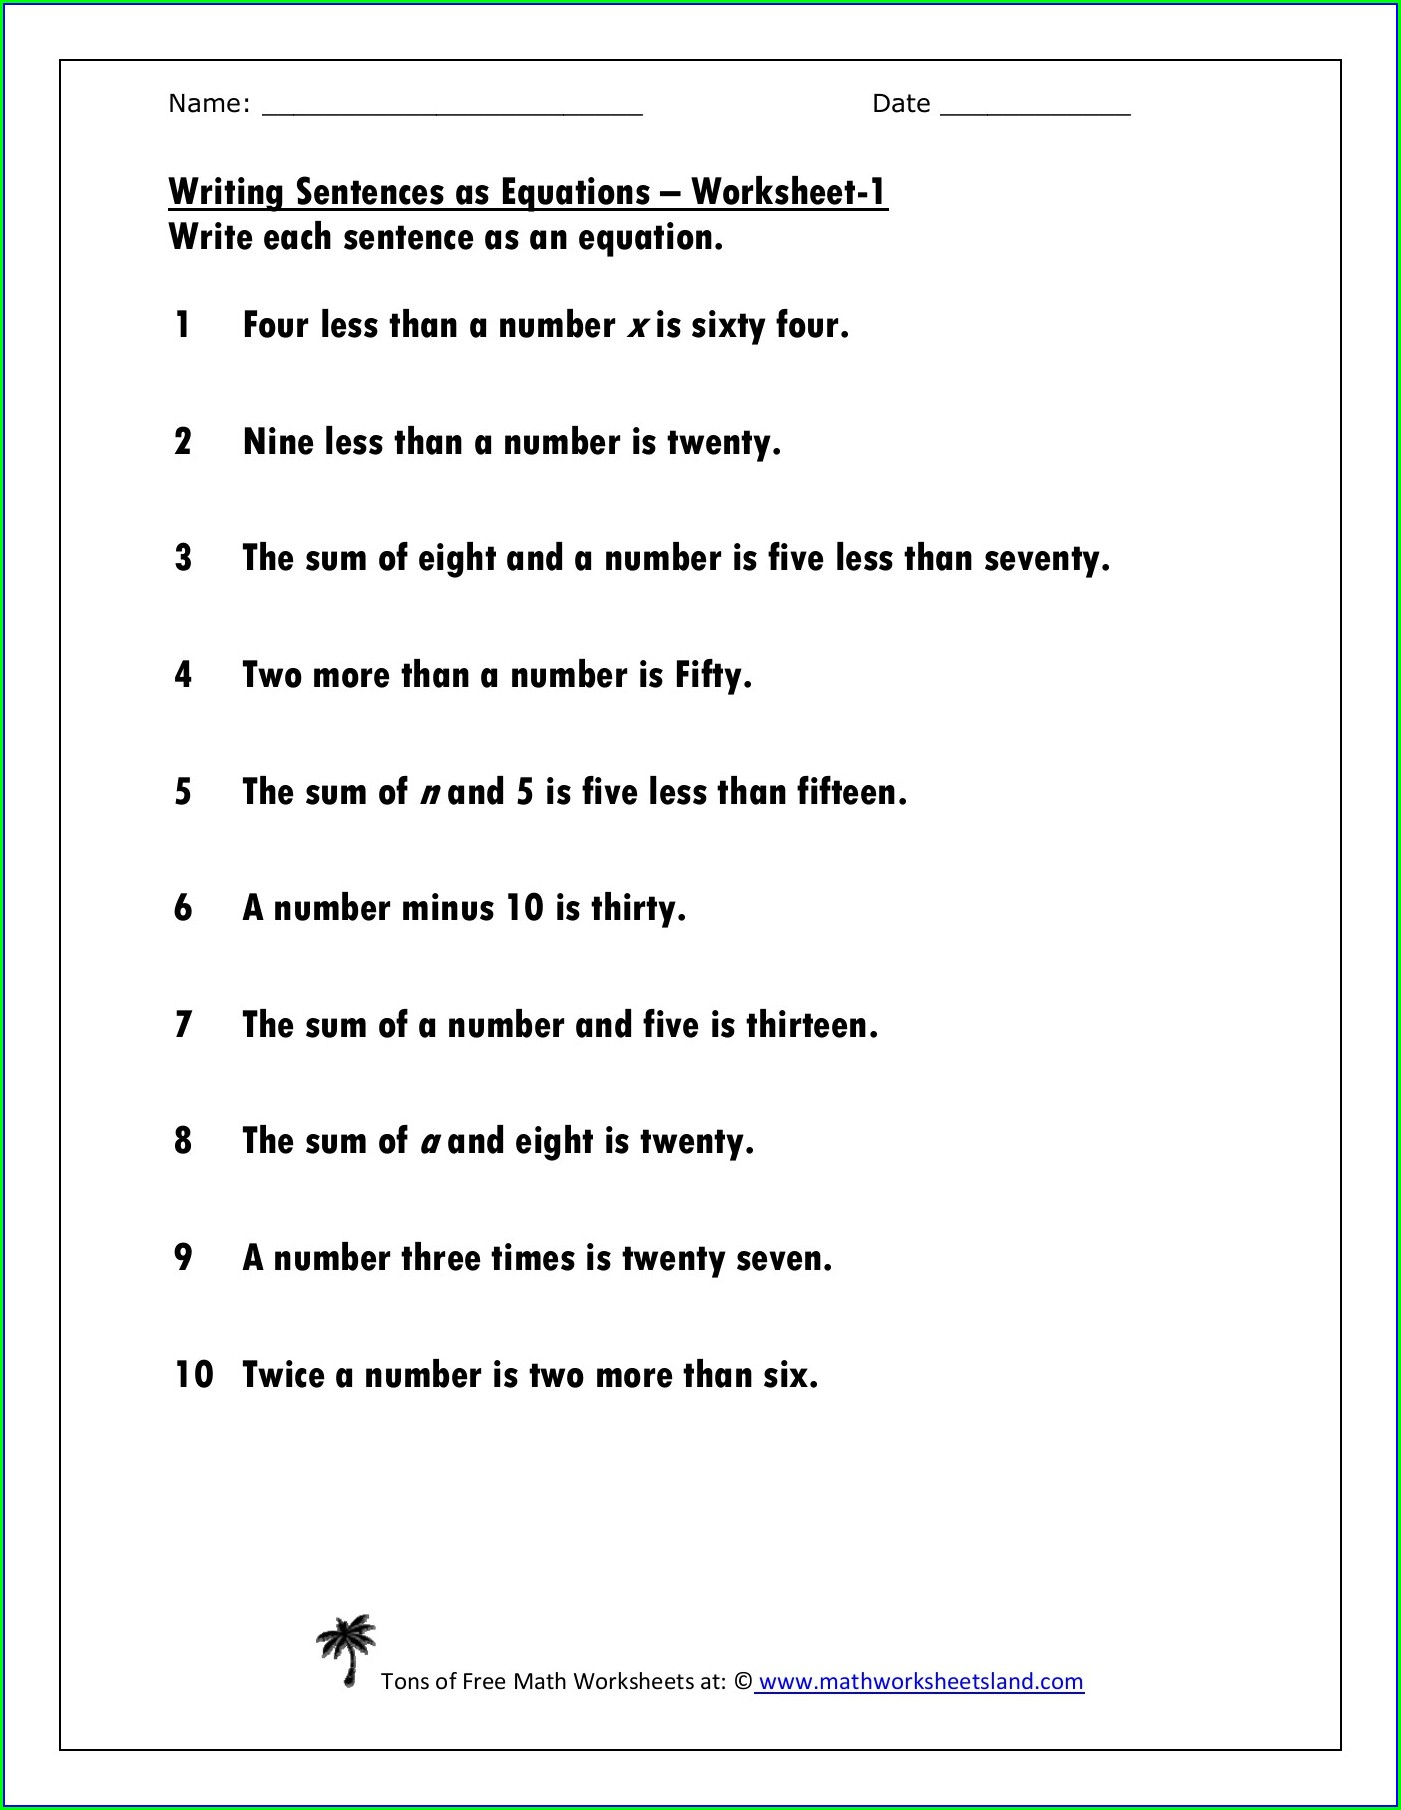 Writing Sentences As Equations Worksheet Answers